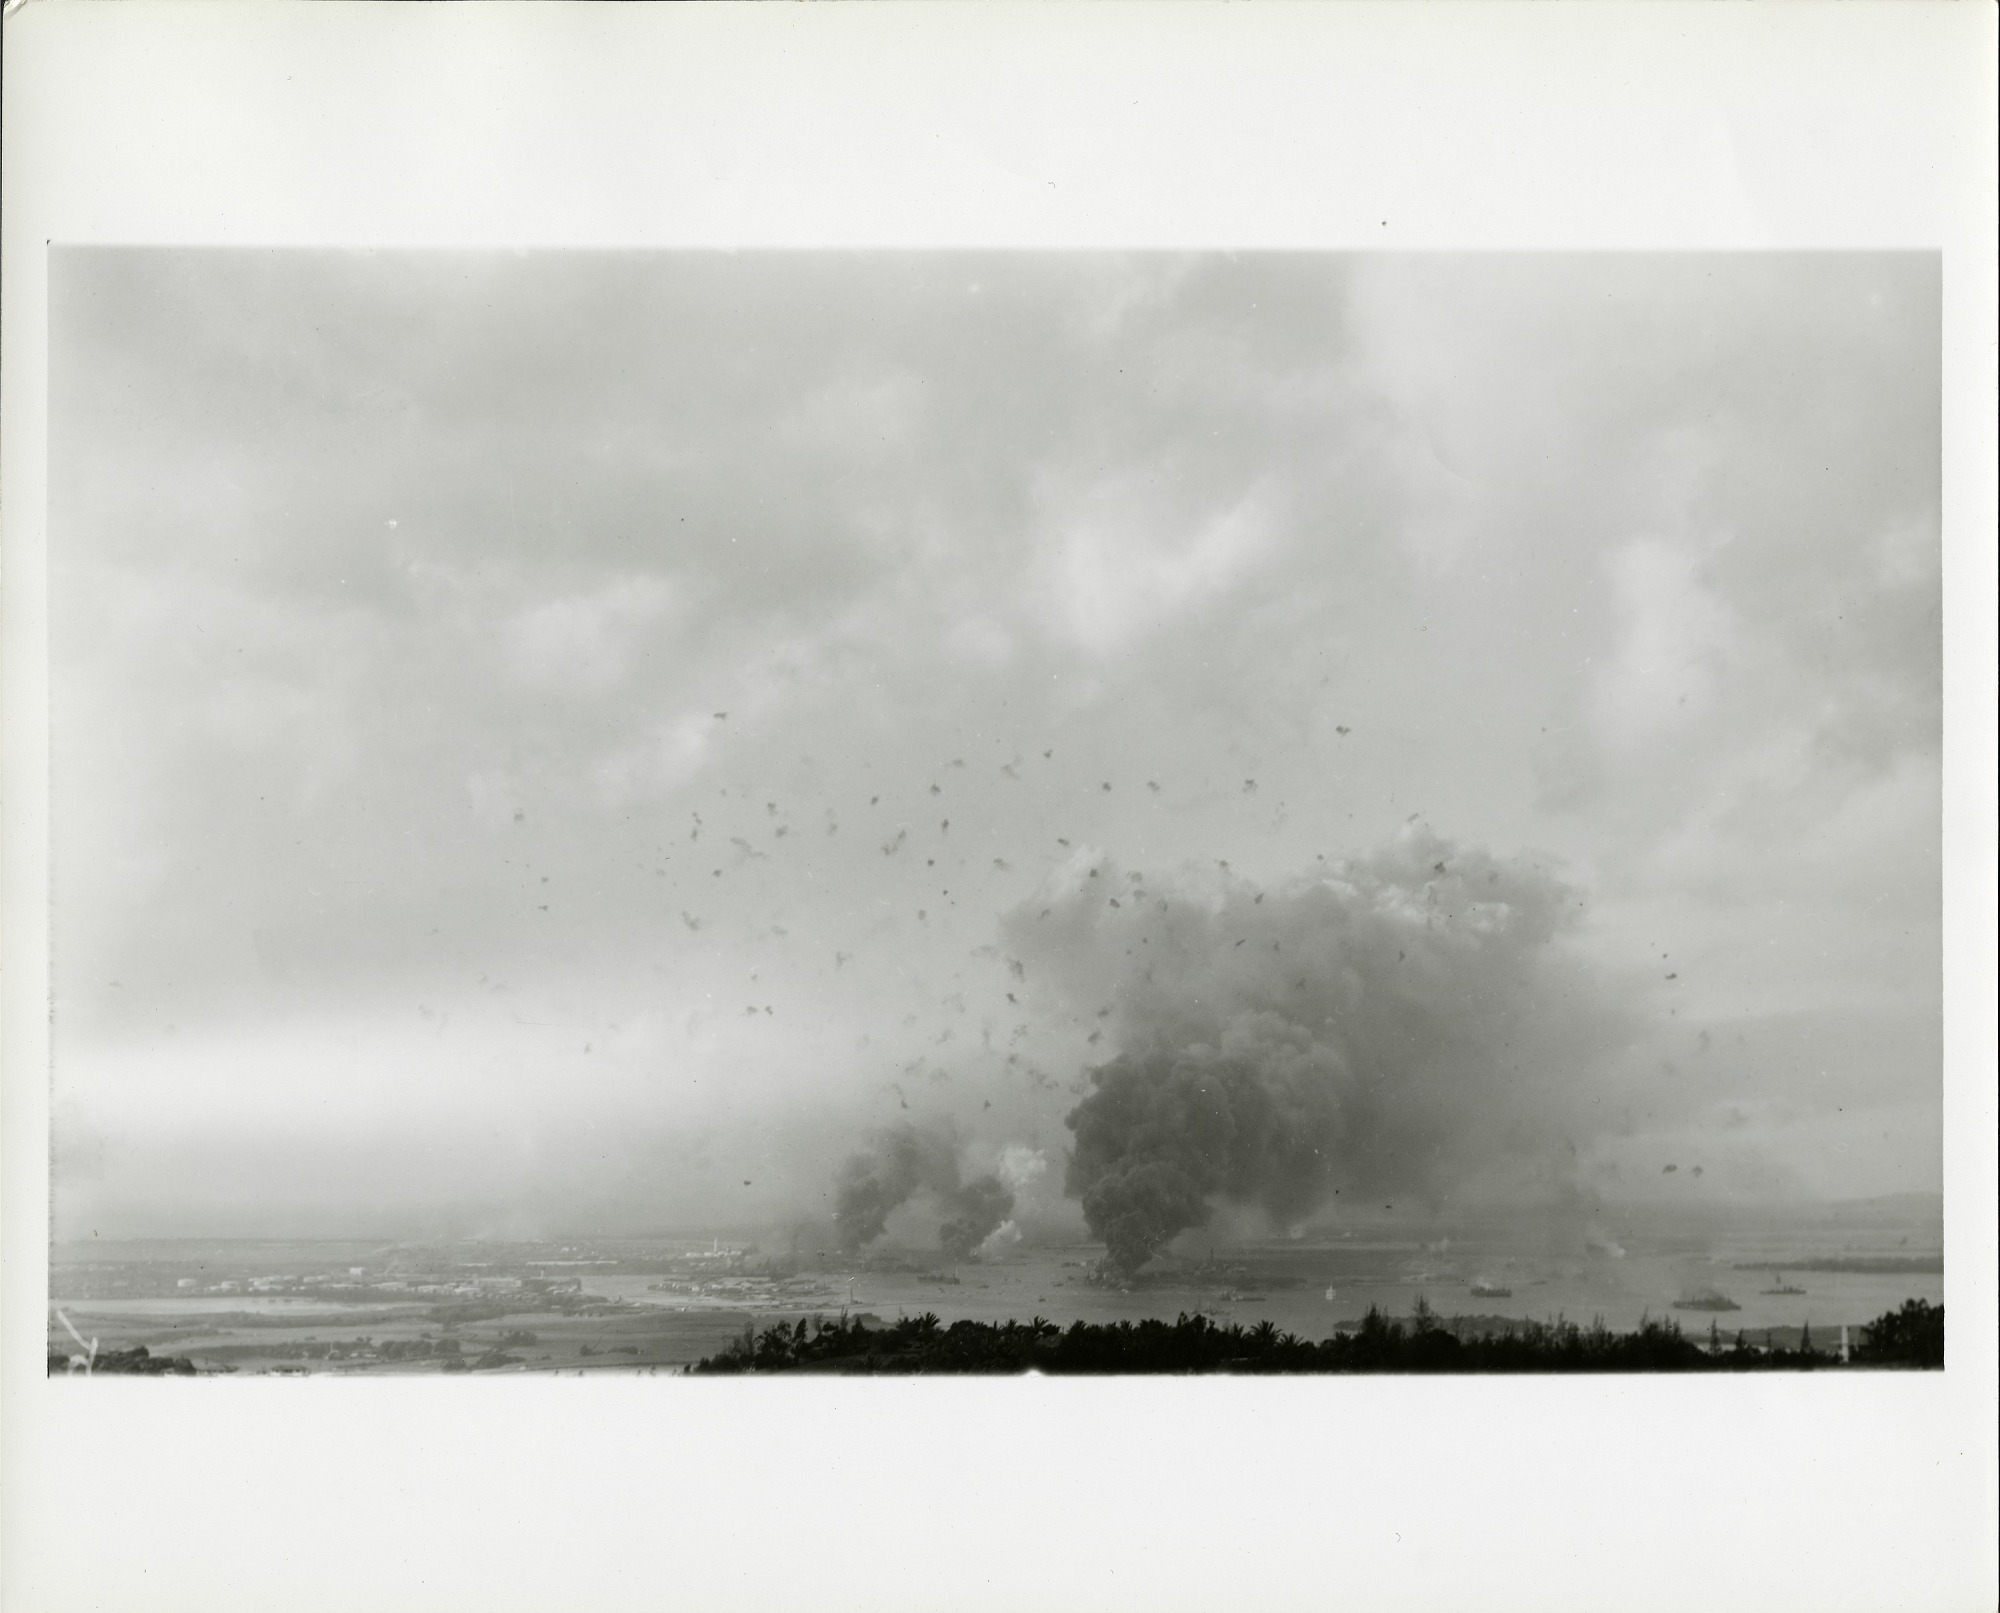 View of the Japanese Attack on Pearl Harbor, by United States Dept. of the Navy, Smithsonian Archives - History Div, SIA2013-00600 or USN 32792.